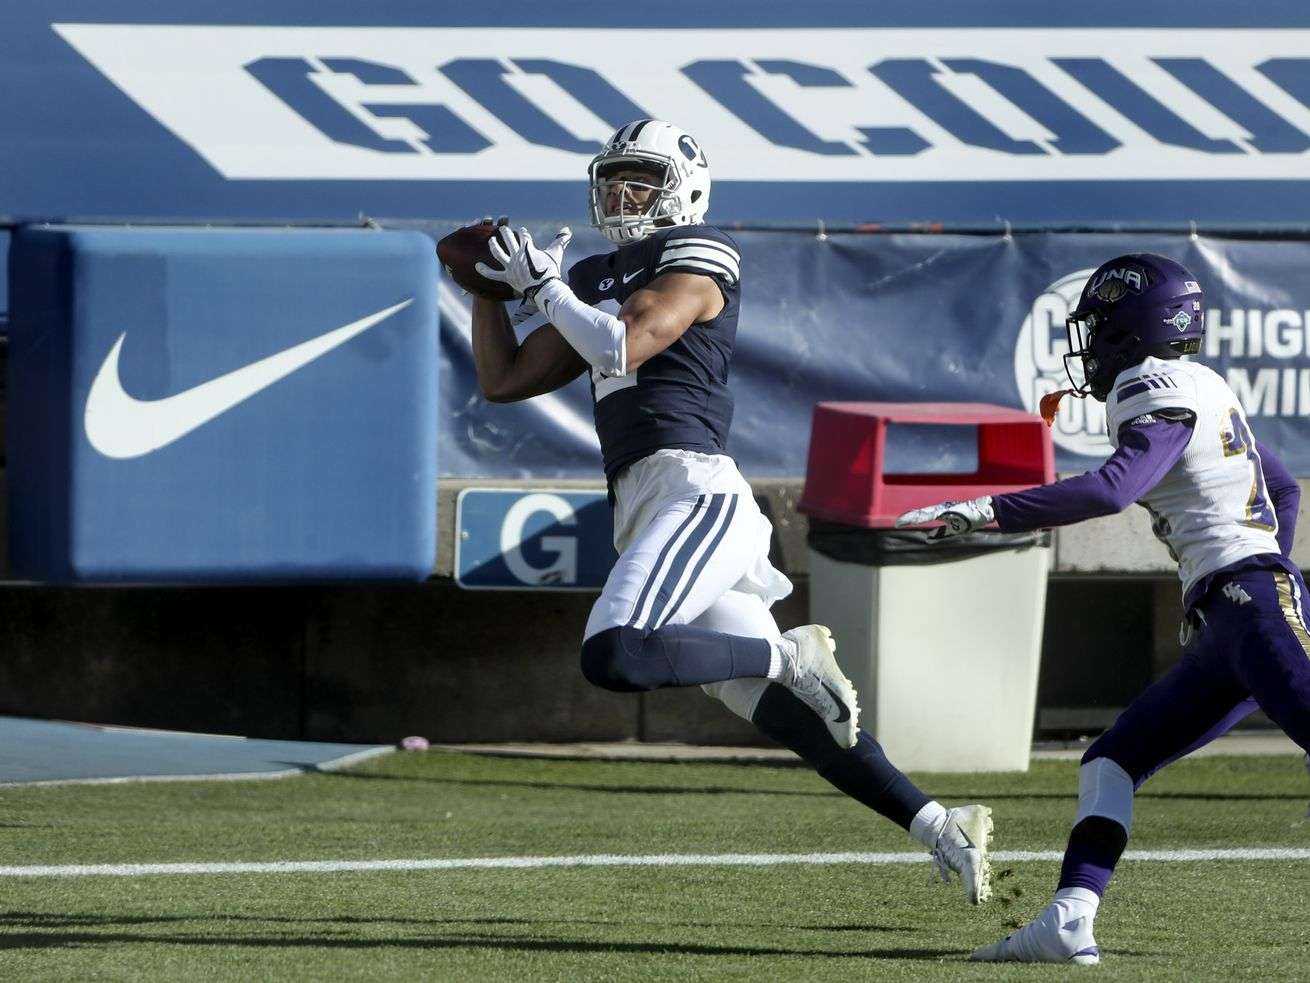 Brigham Young Cougars wide receiver Neil Pau'u (2) hauls in a touchdown over North Alabama Lions defensive back Gerrell Green (28) during a game in Provo on Saturday, Nov. 21, 2020.